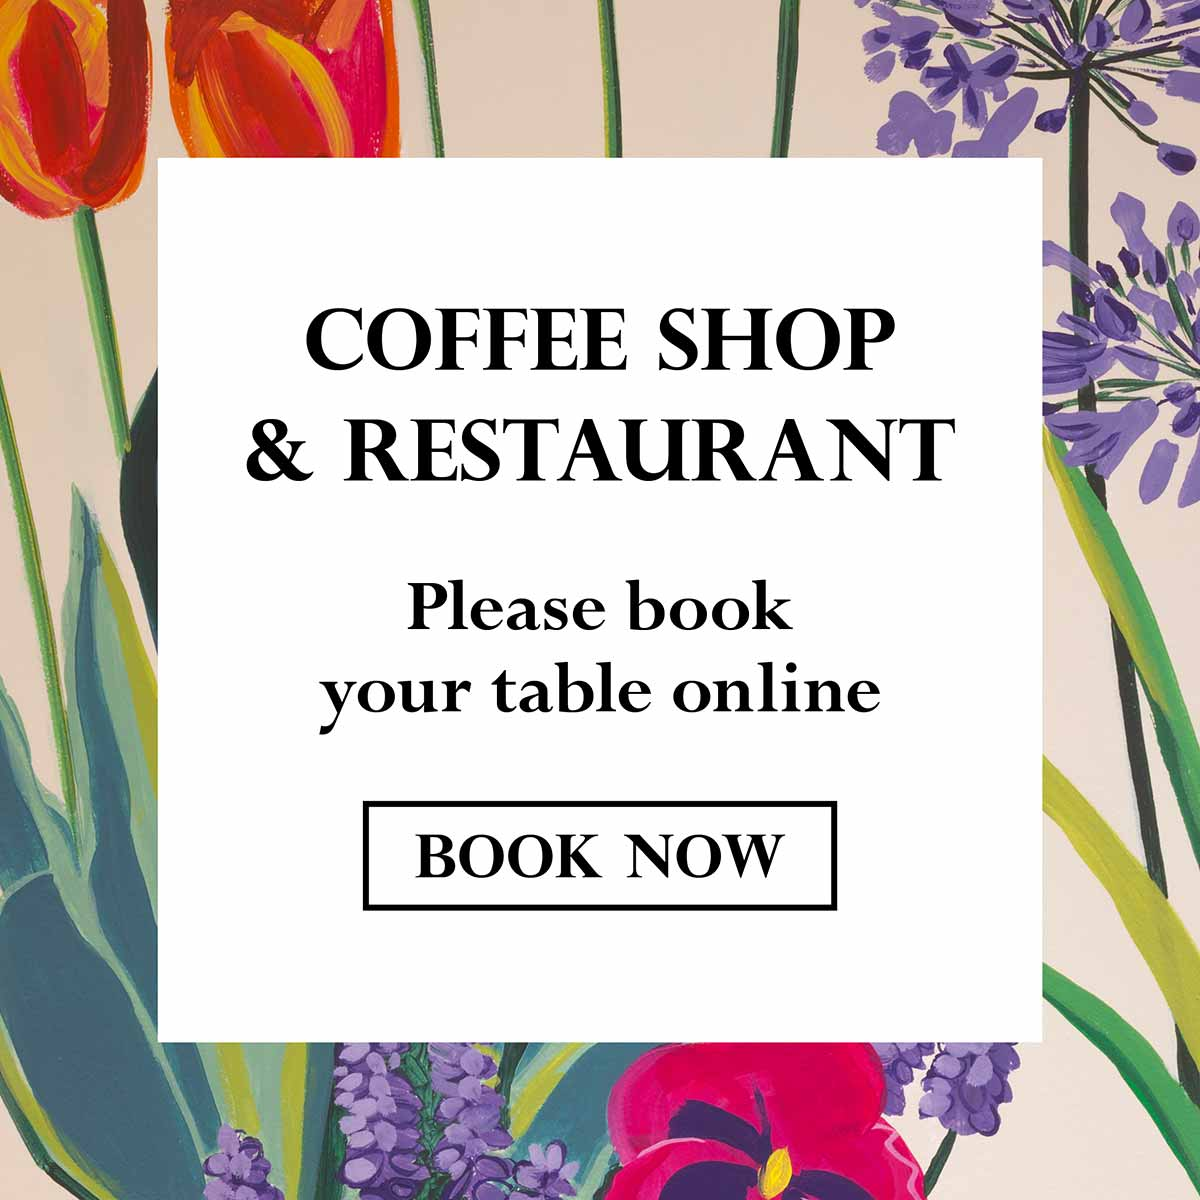 Perrywood Coffeeshop & Restaurant – BookOnline